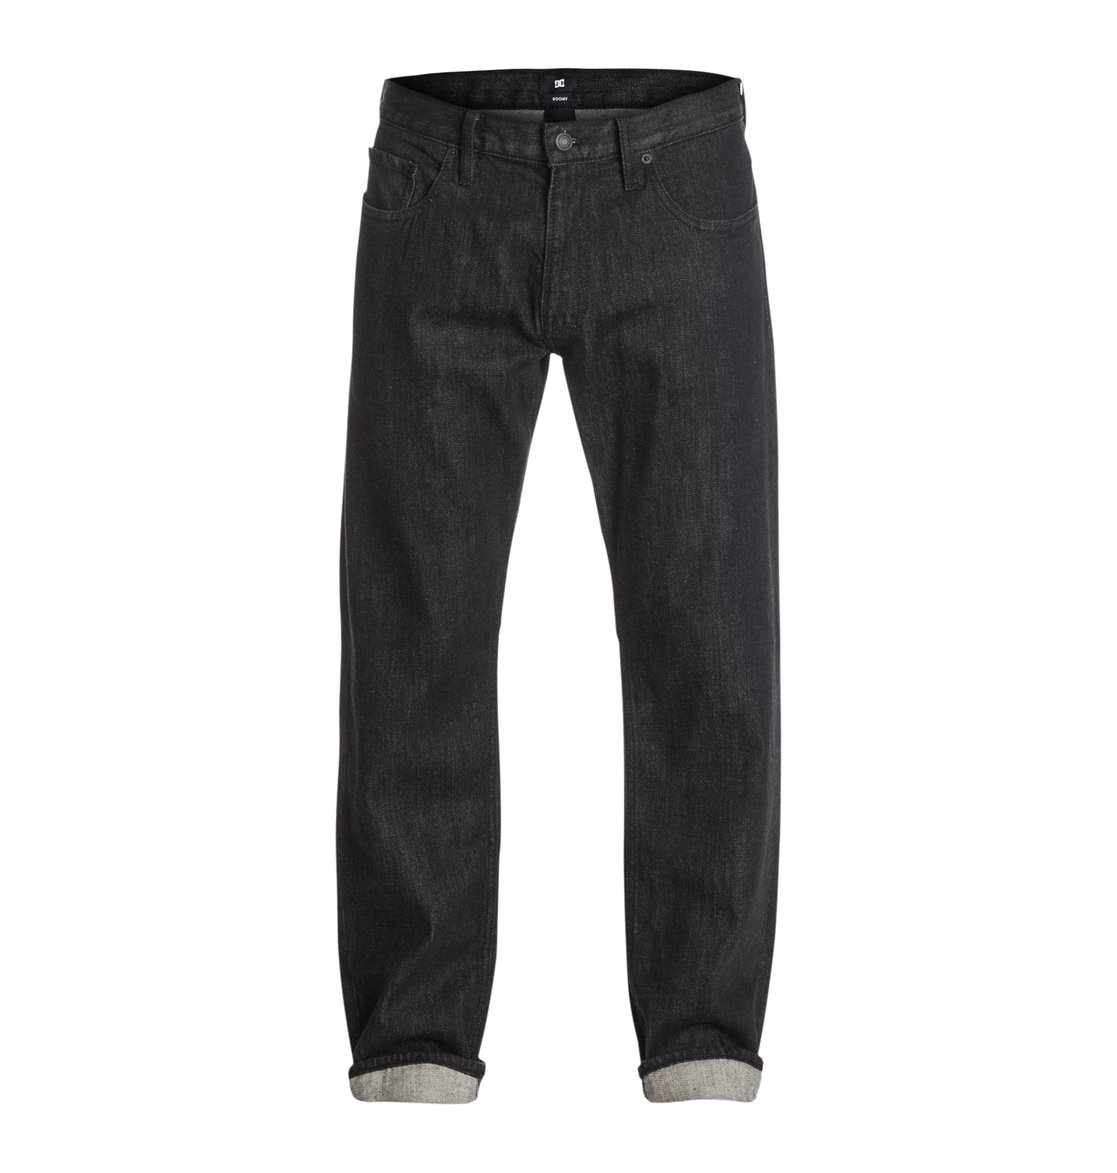 Worker Basic Roomy Jean Black Rinse 32 - Dcshoes������ ���������� ���� Worker Basic Roomy Jean Blk Rin 32 �� DC Shoes � ������� �� ��������� ����� 2015�. ��������������: ������� �� ������, ������������� ��������, �����-������� DC.<br>